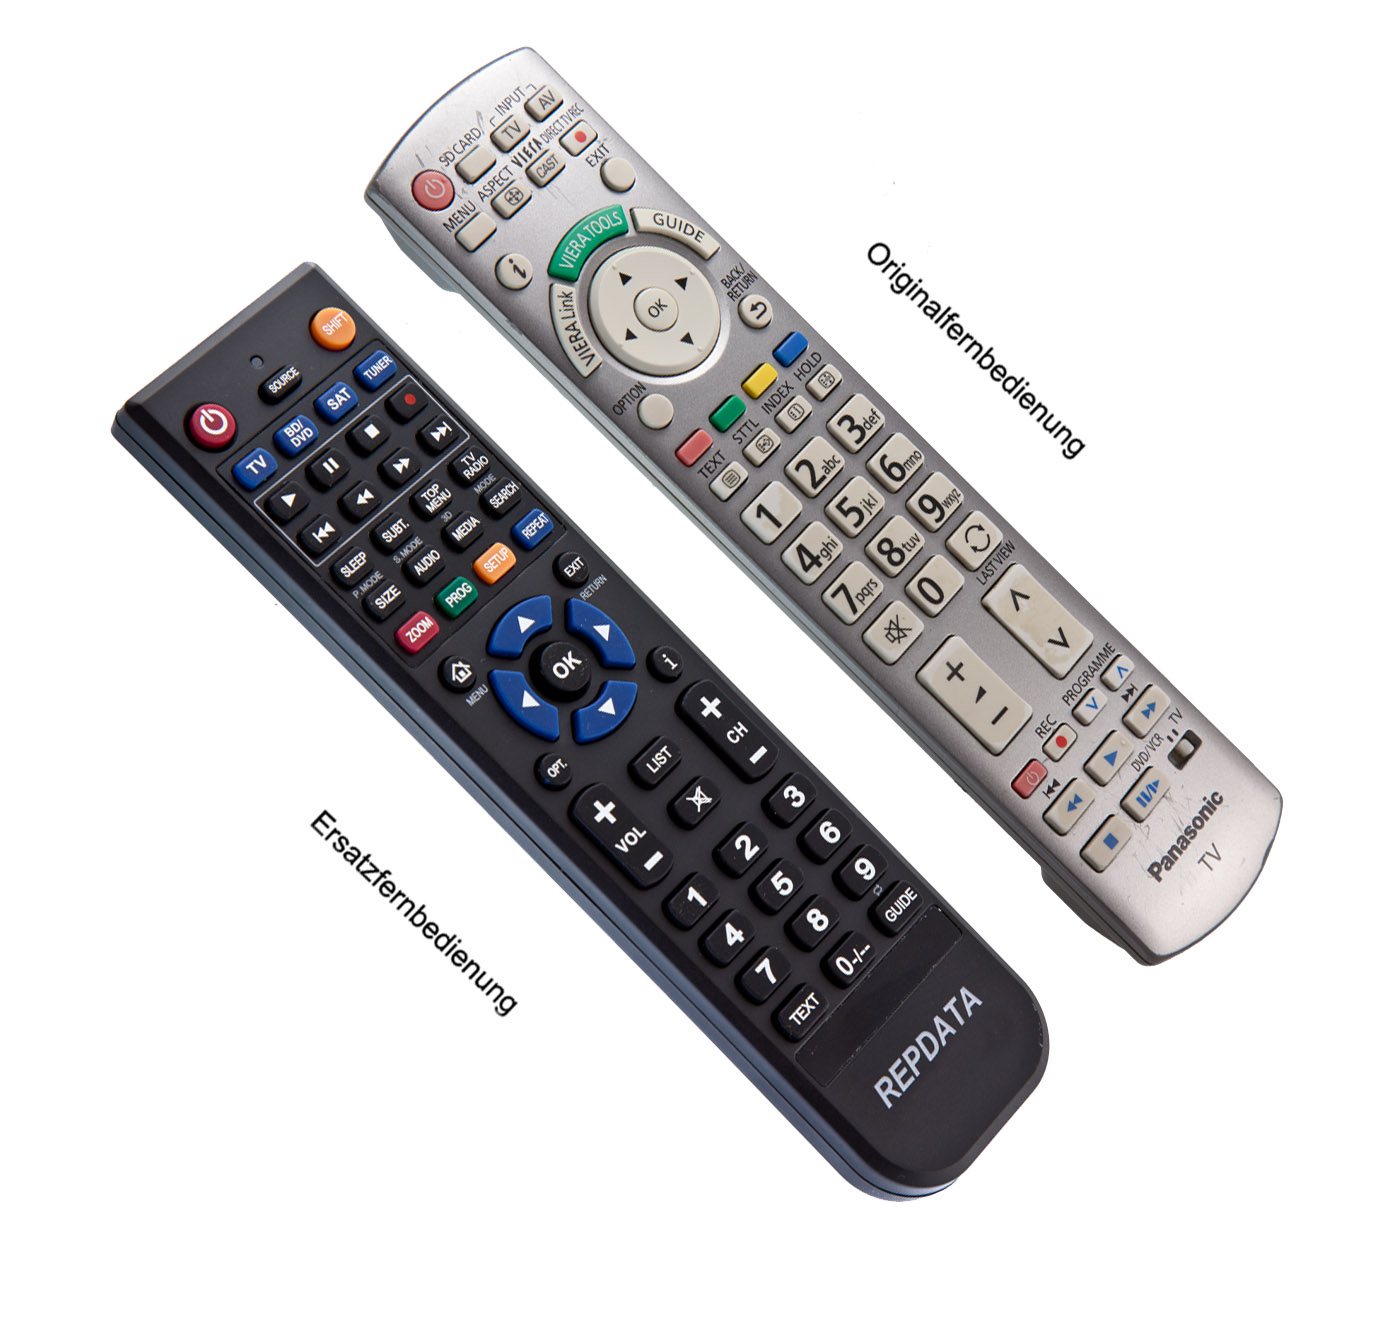 carrier remote control instructions